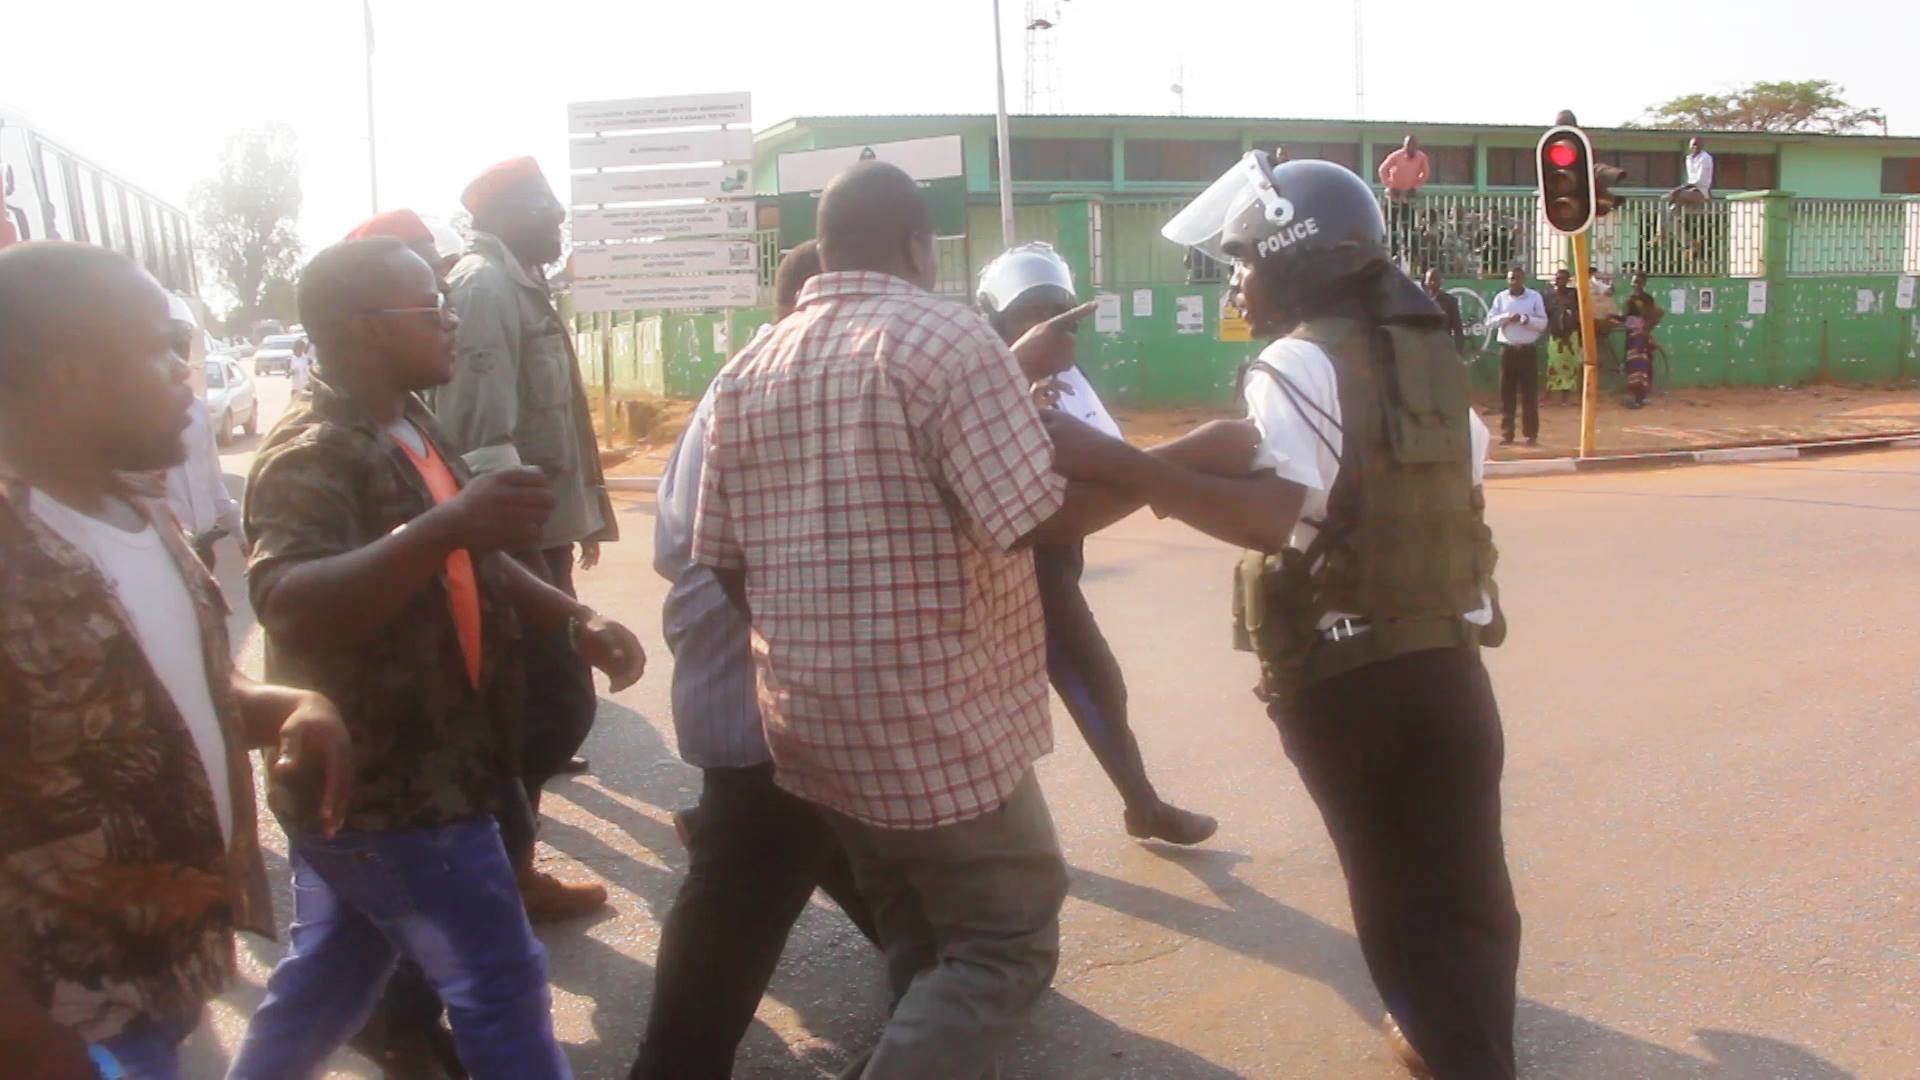 Unlawful assembly, unlawful cops in GBM case